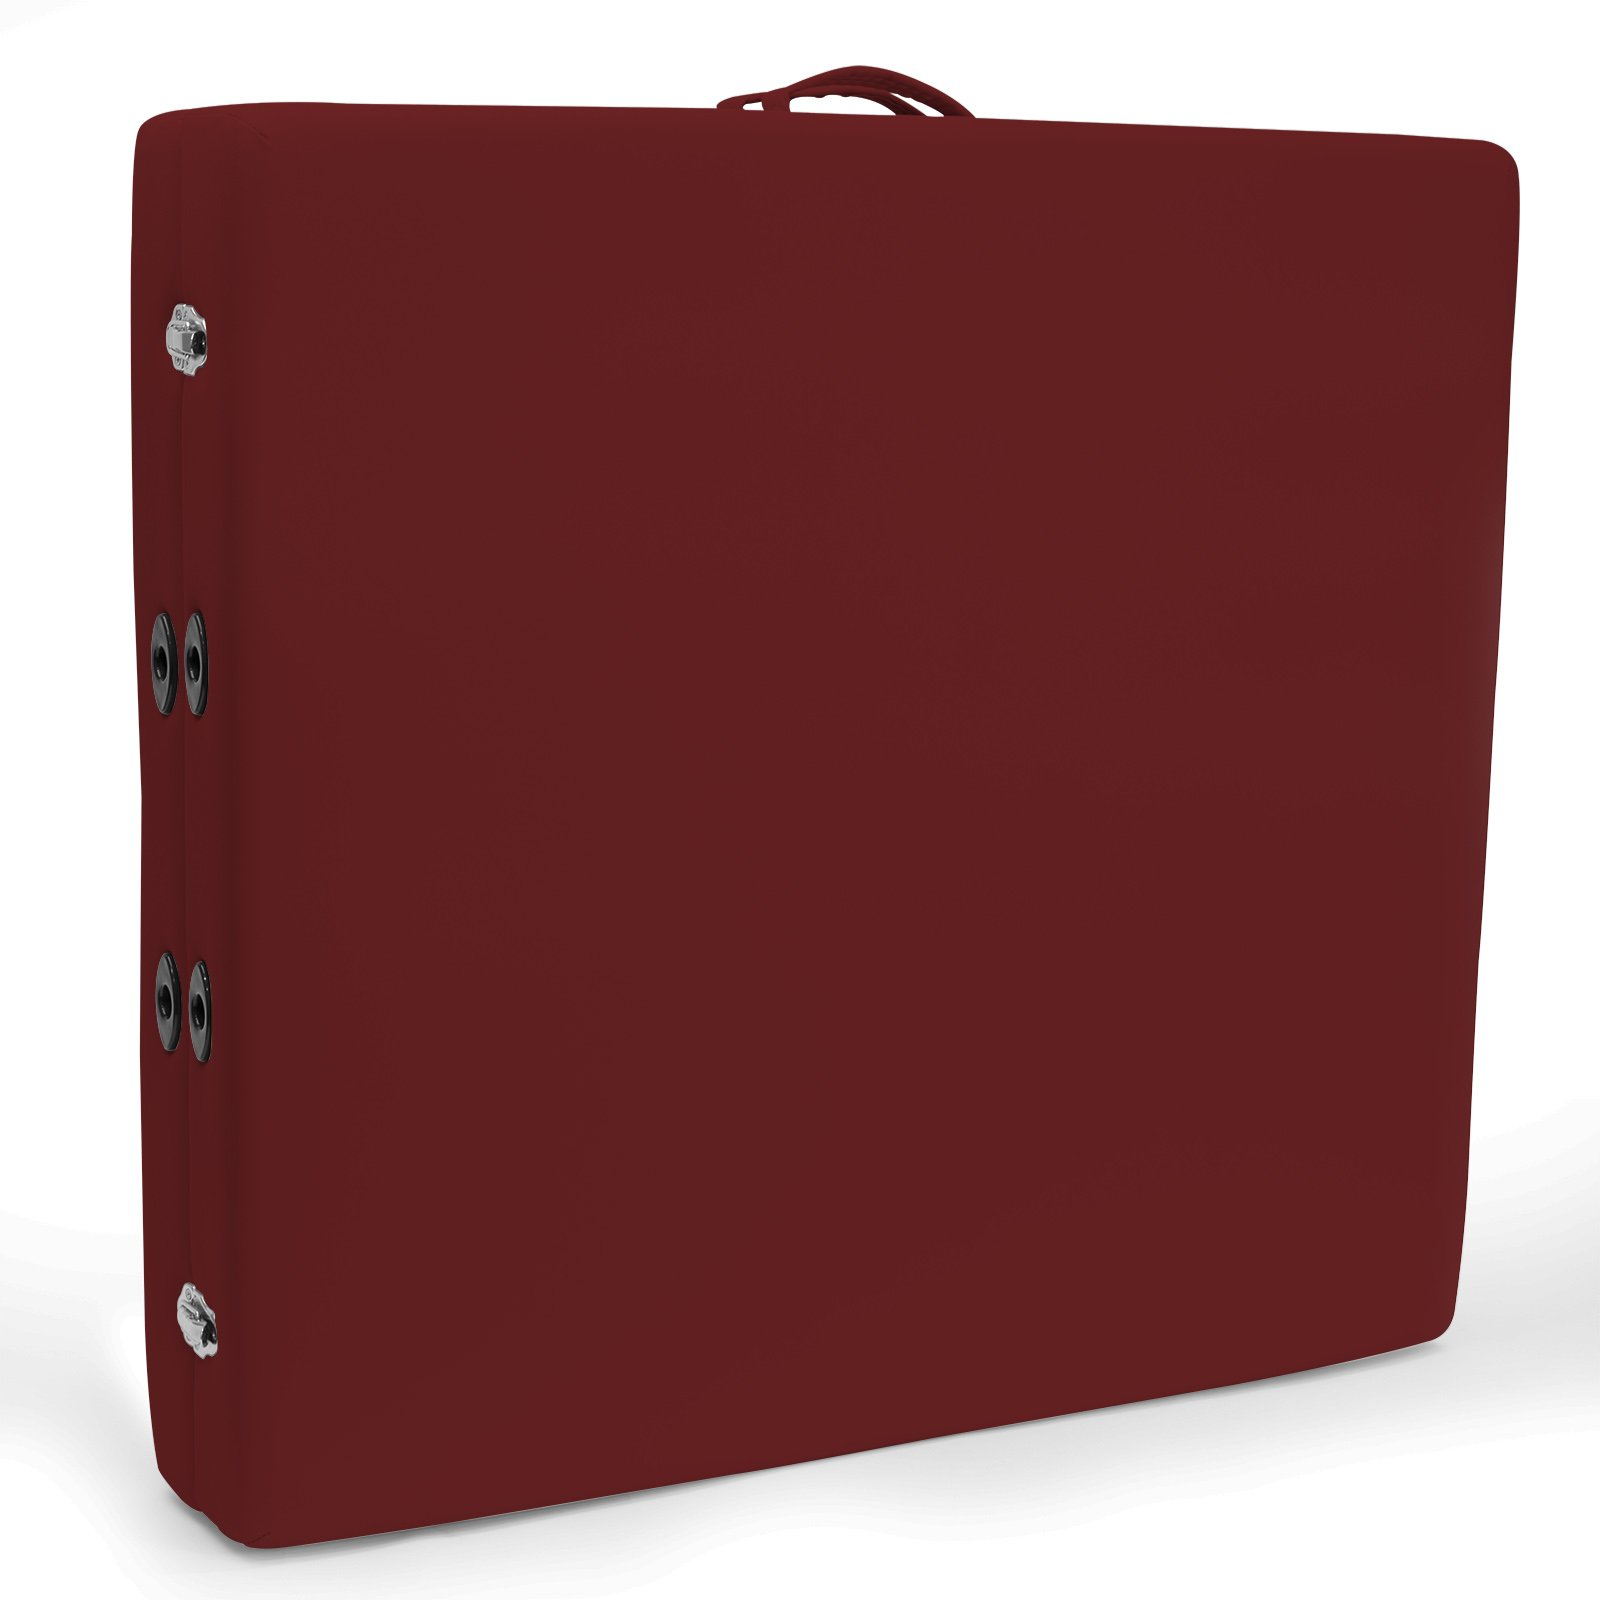 Saloniture Portable Physical Therapy Massage Table - Low to Ground Stretching Treatment Mat Platform - Burgundy by Saloniture (Image #3)